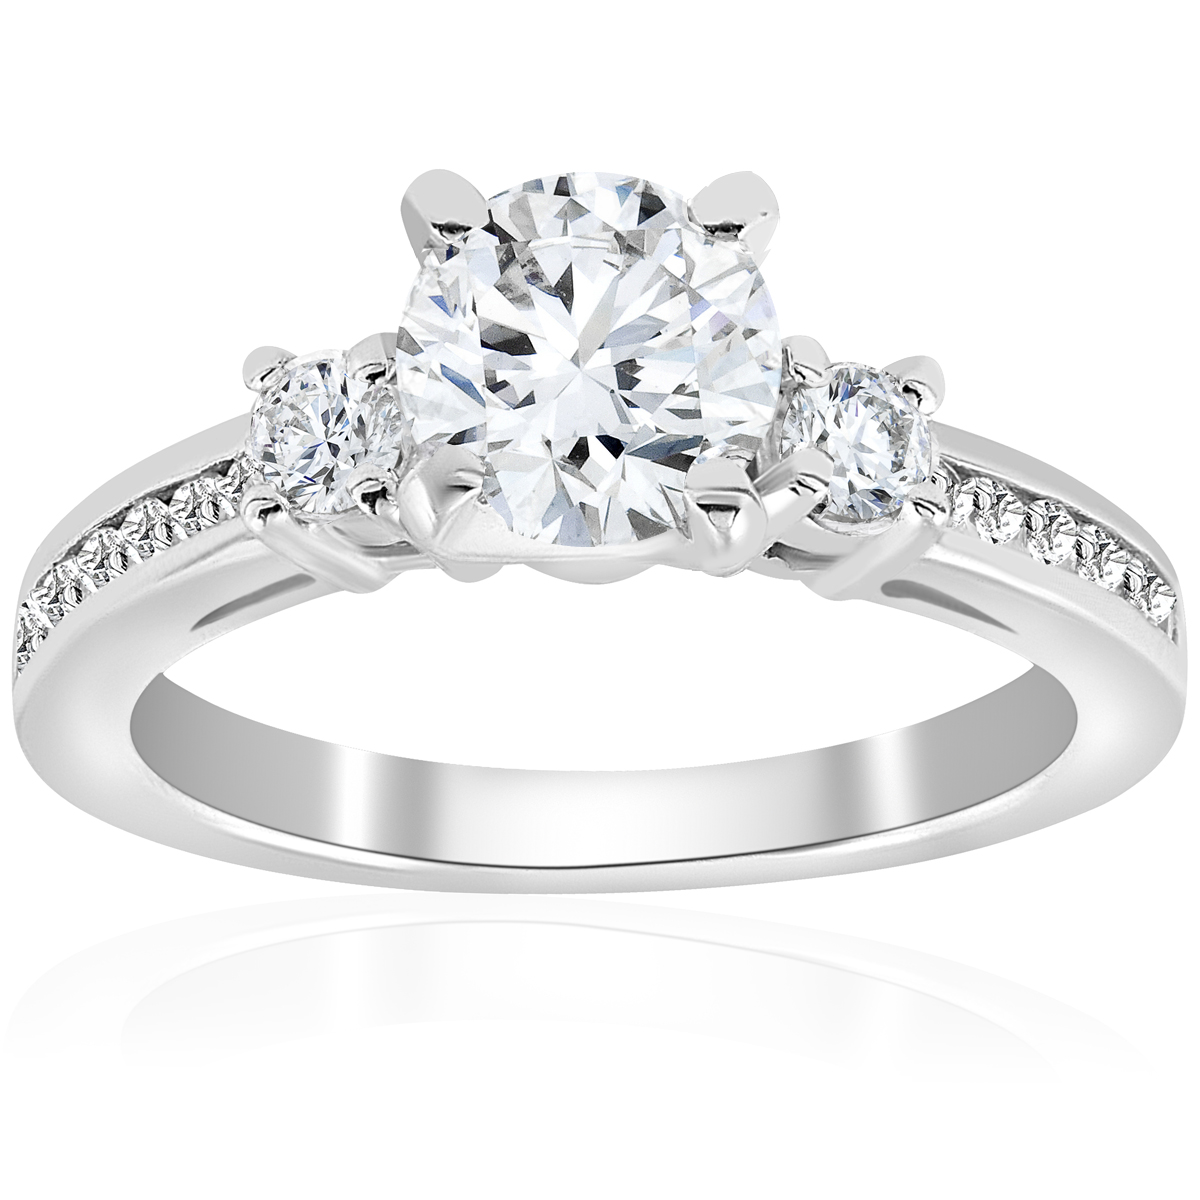 1 Ct Wedding Ring 1 Ct Diamond Round Cut Solitaire 3 Stone Engagement Ring